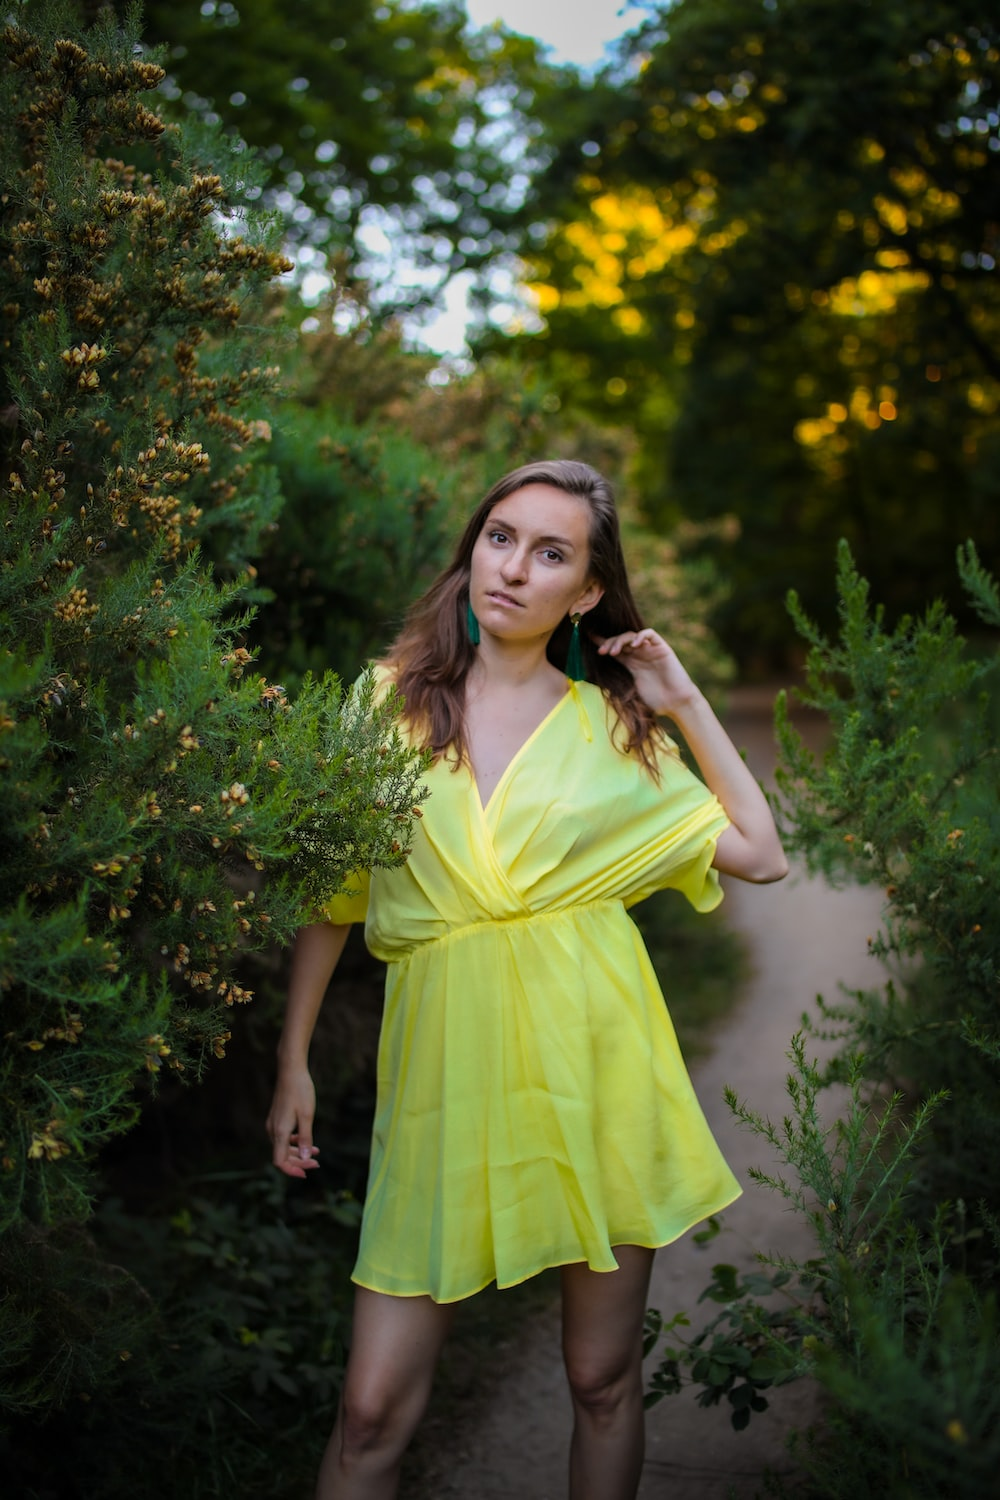 woman in yellow sleeveless dress standing beside green plant during daytime